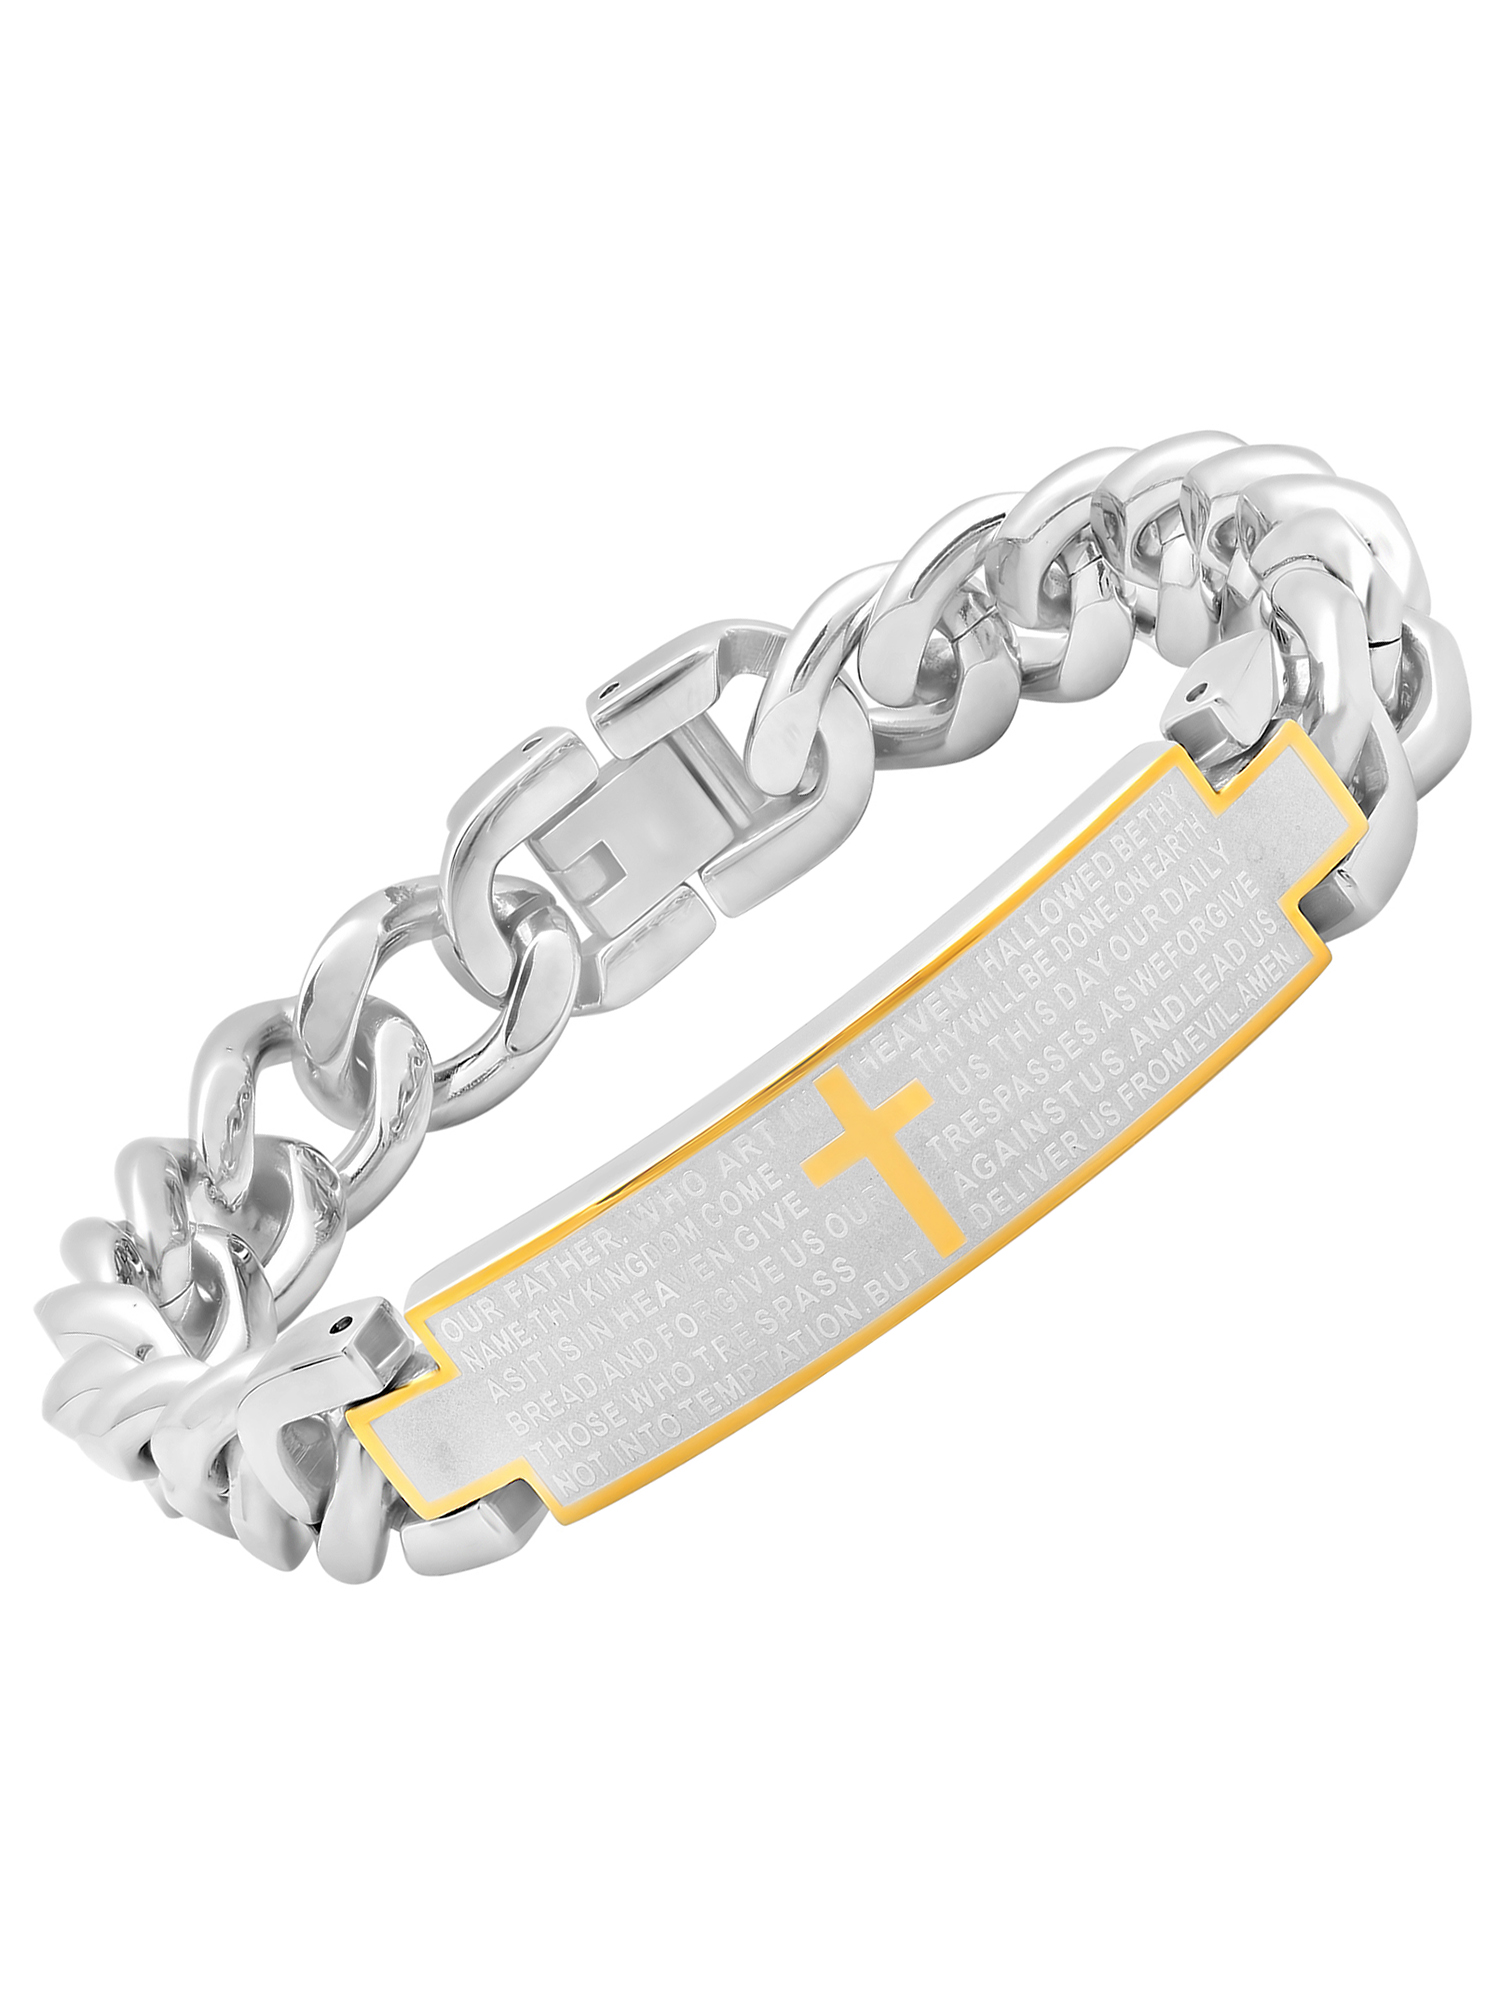 Men's Stainless Steel Two-Tone Lord's Prayer ID Bracelet, 8.5""